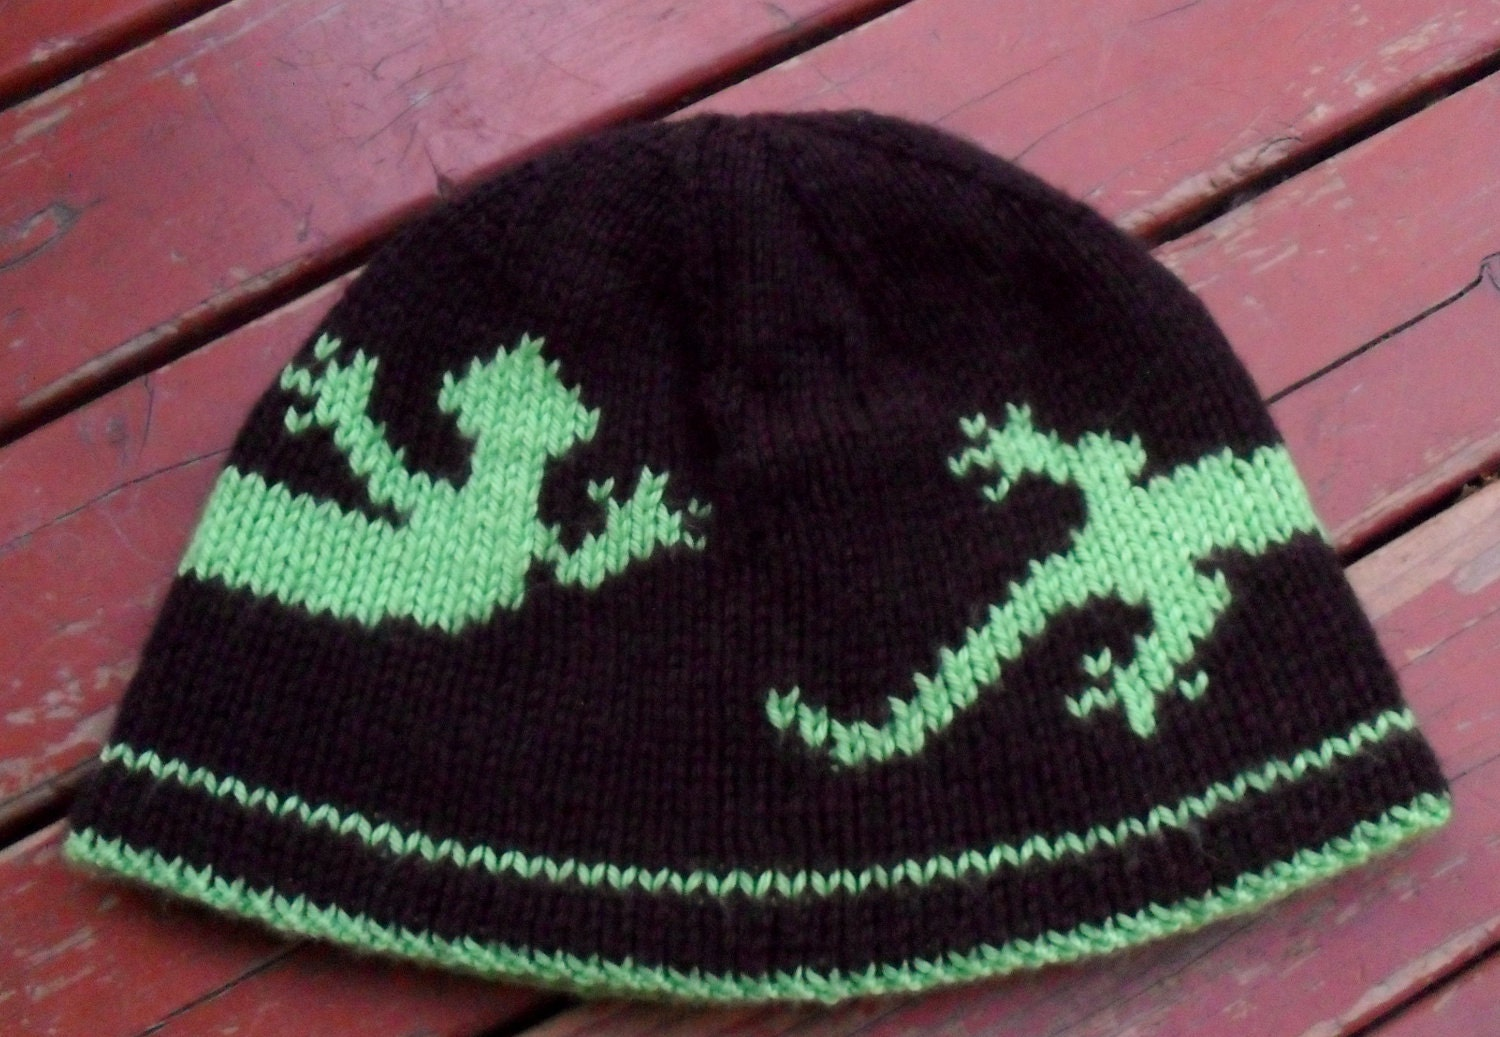 Double Knitting Hat Pattern : Lizard Double knit hat pattern and chart by NotAnotherUFO on Etsy